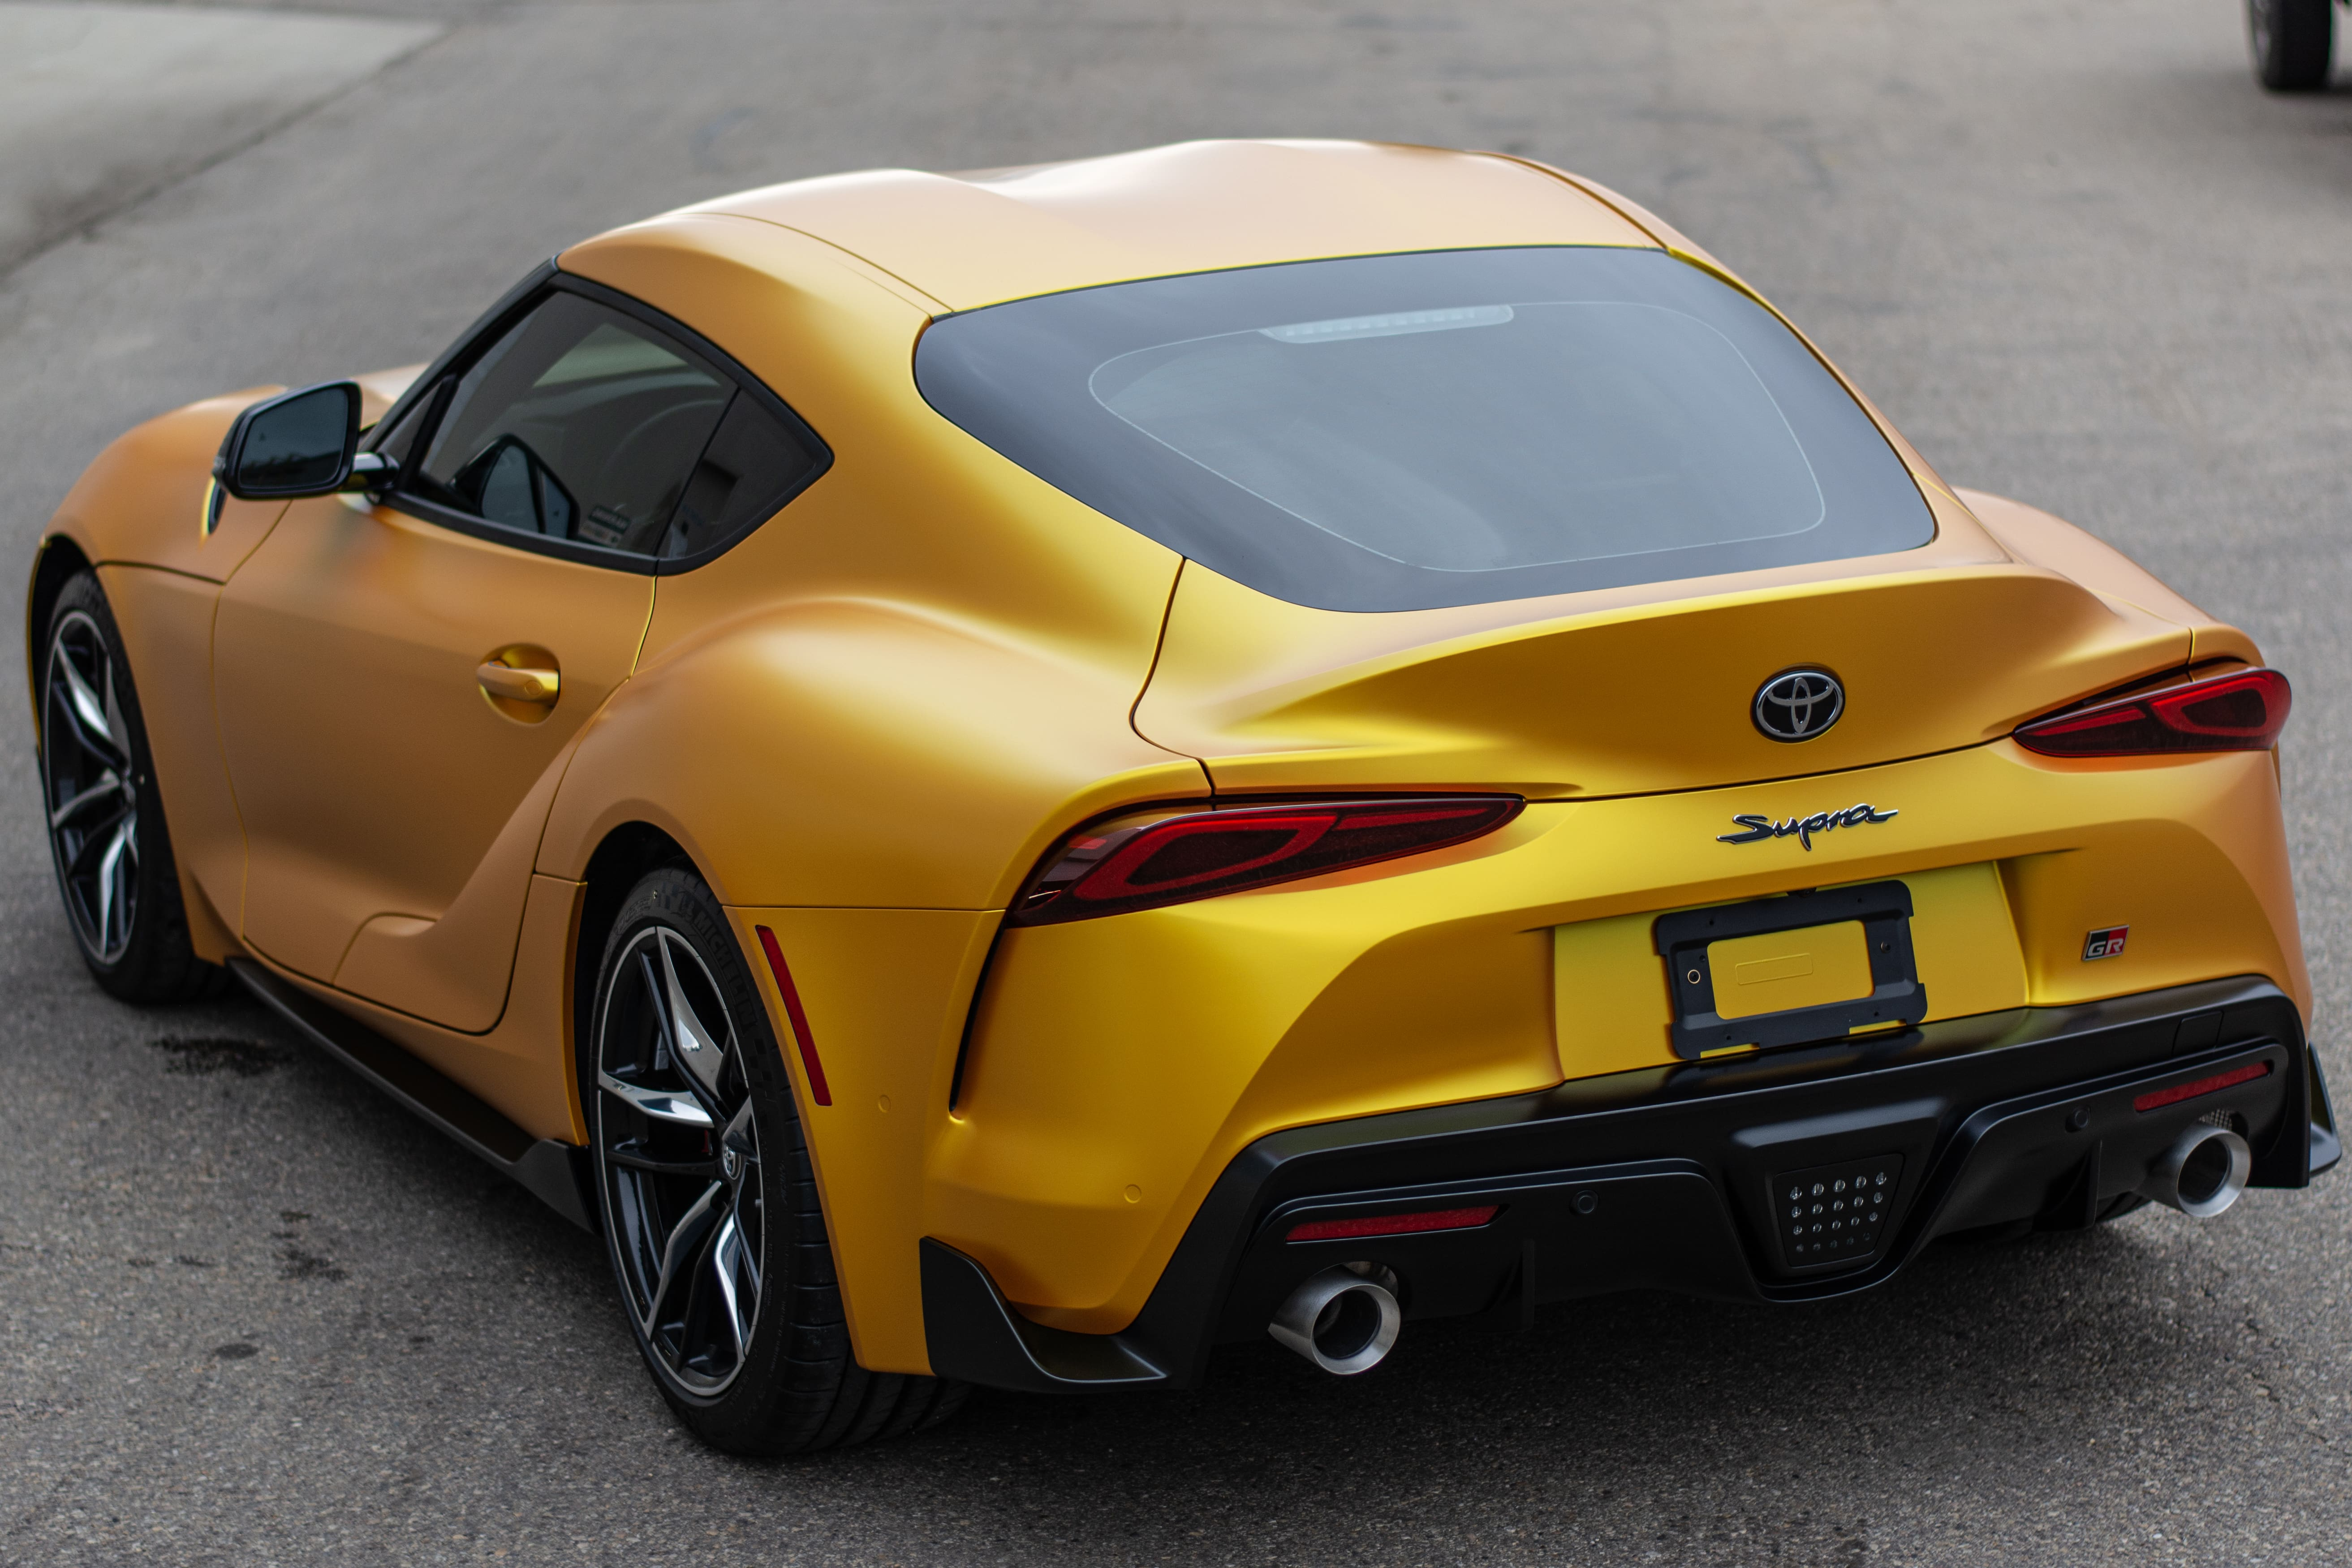 Golden Yellow wrapped Toyota Supra image taken from behind.